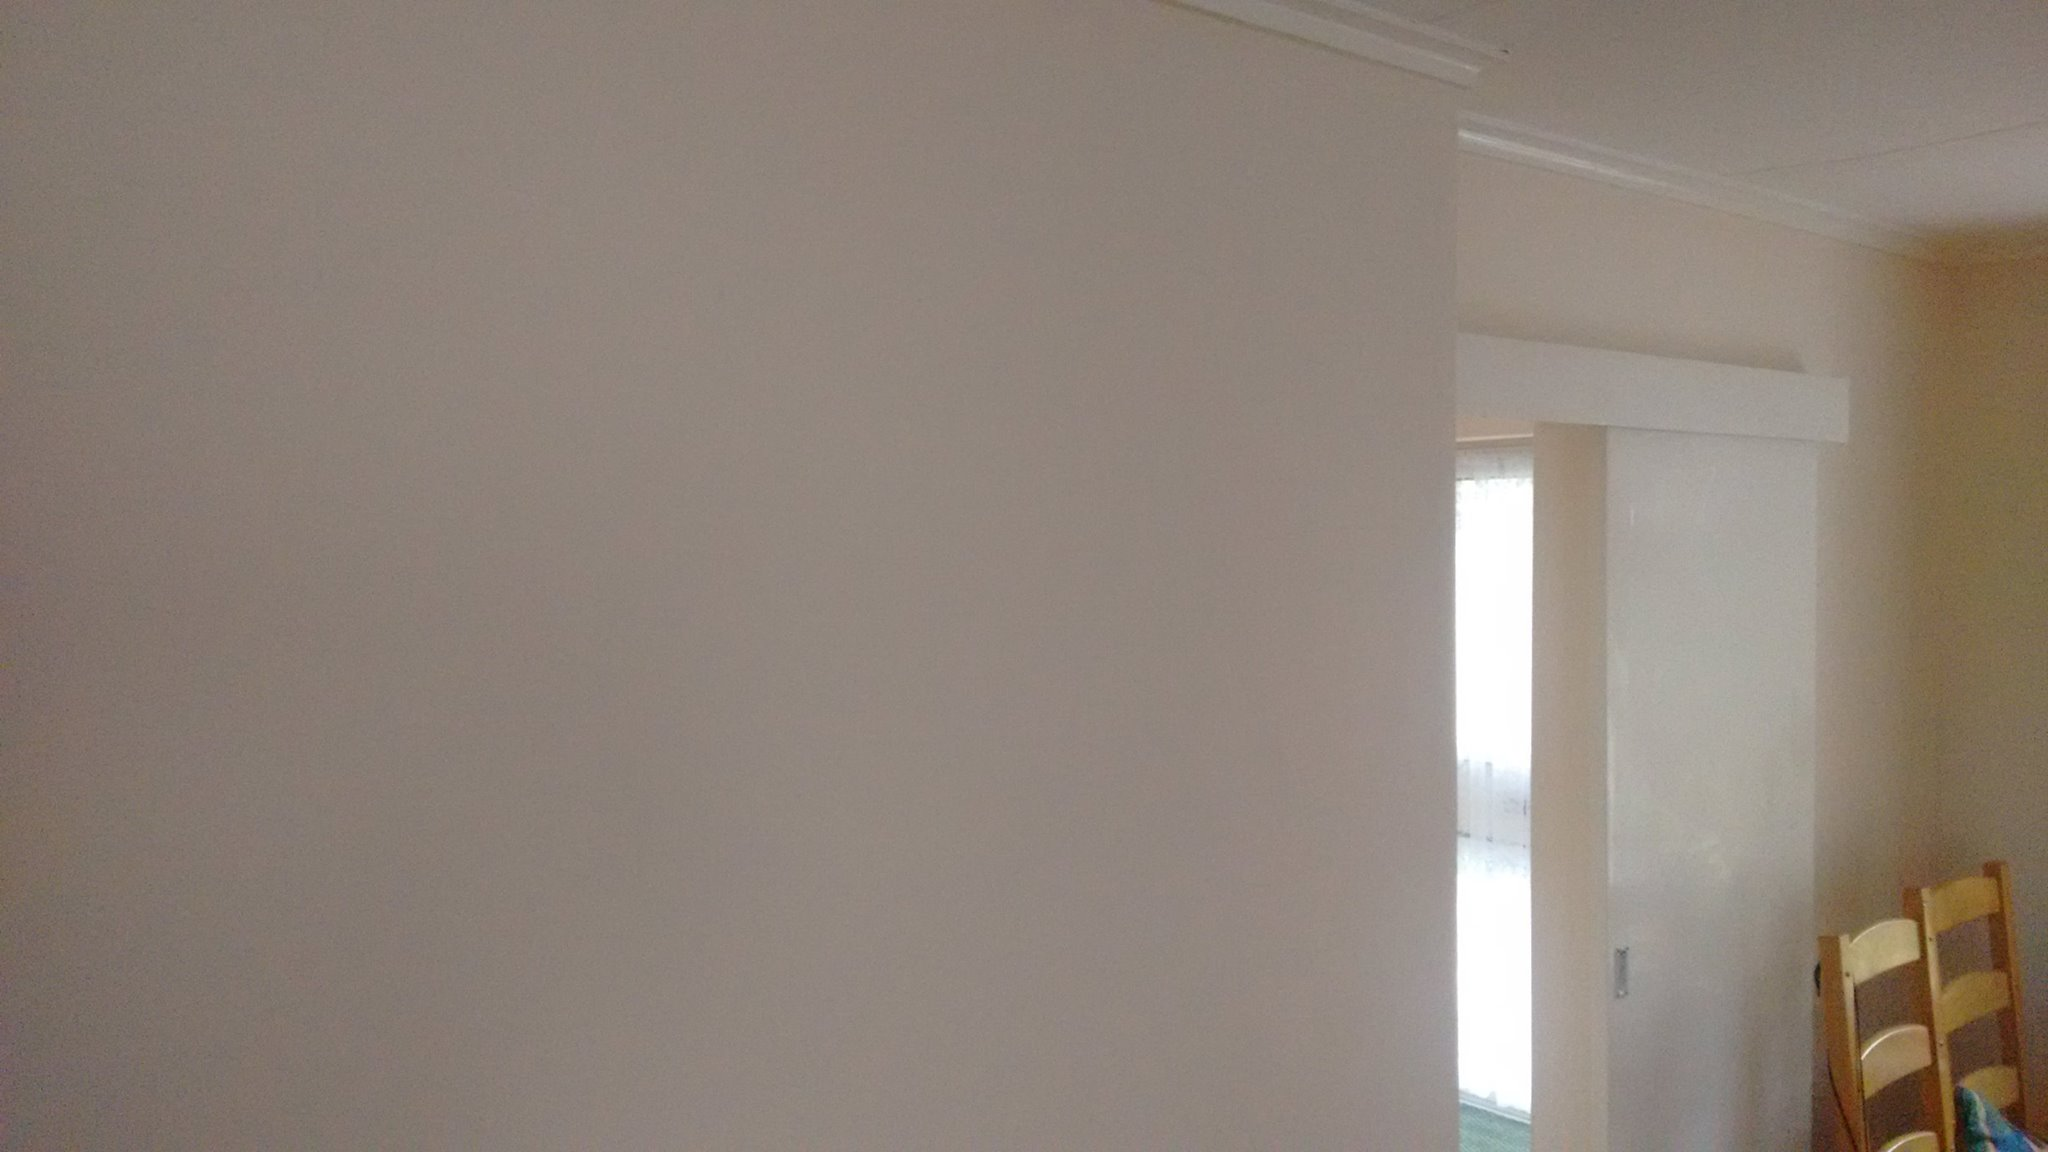 Remedial work done and walls painted